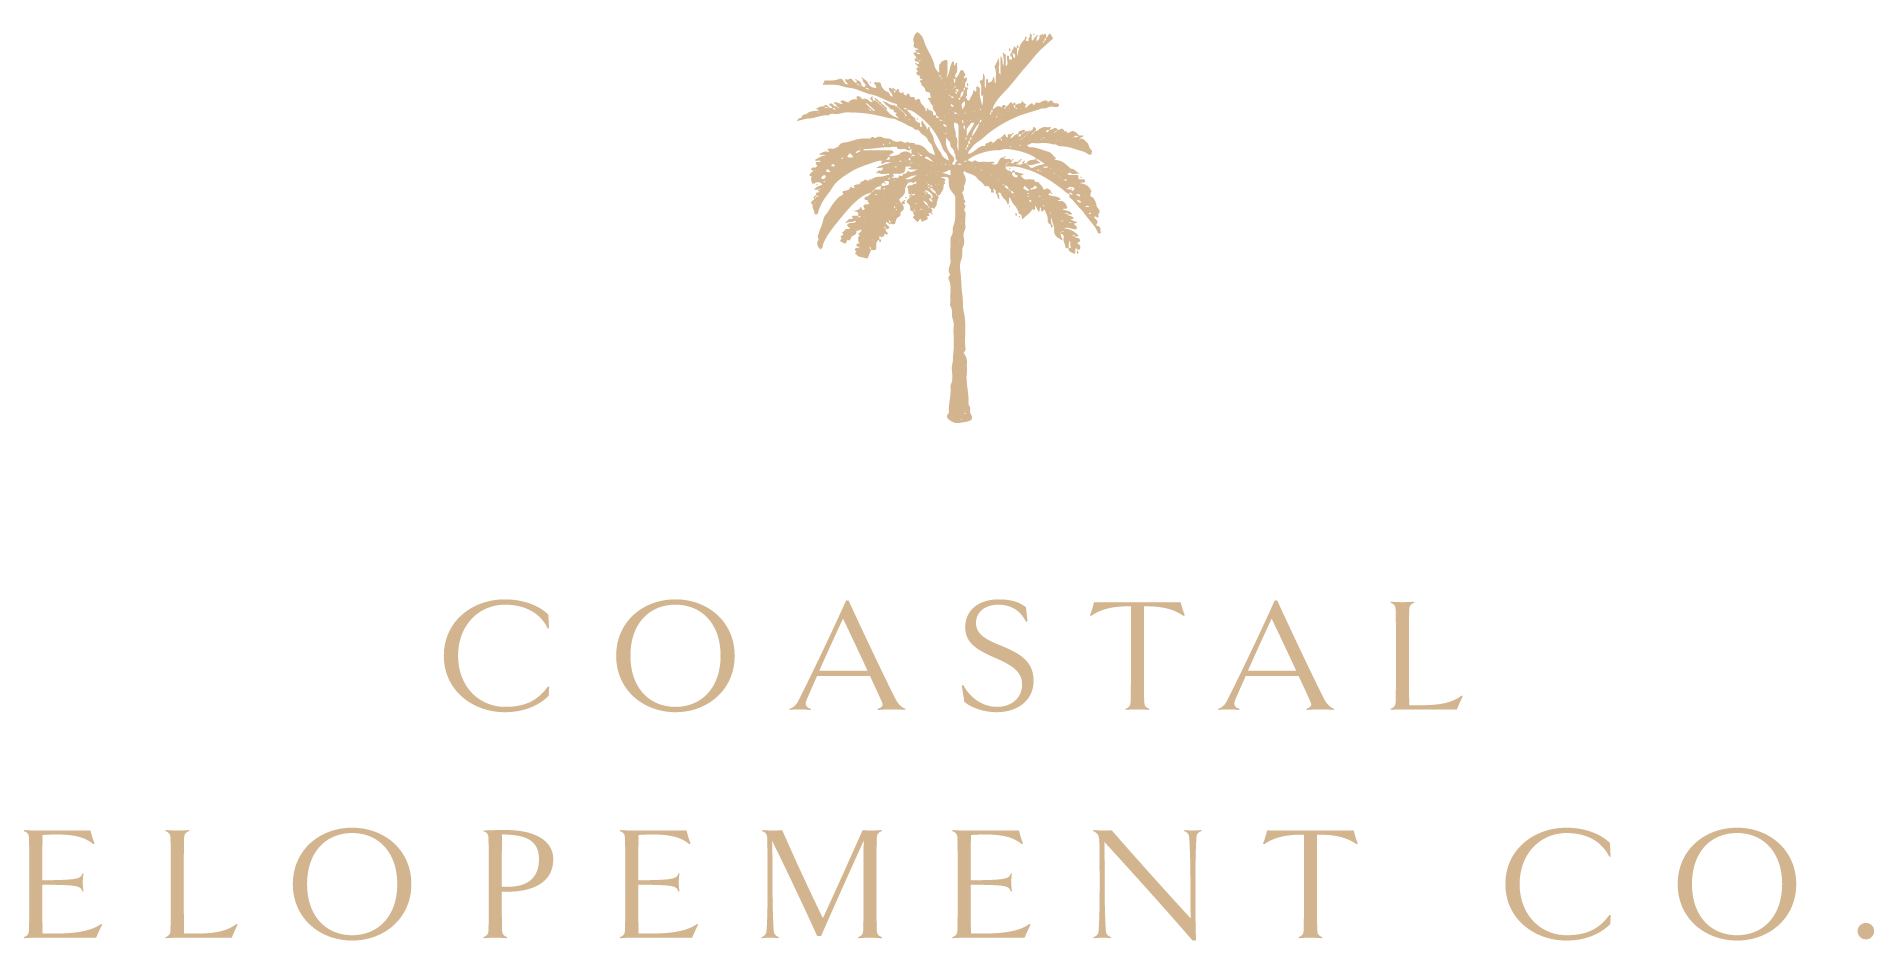 Coastal Elopement Co